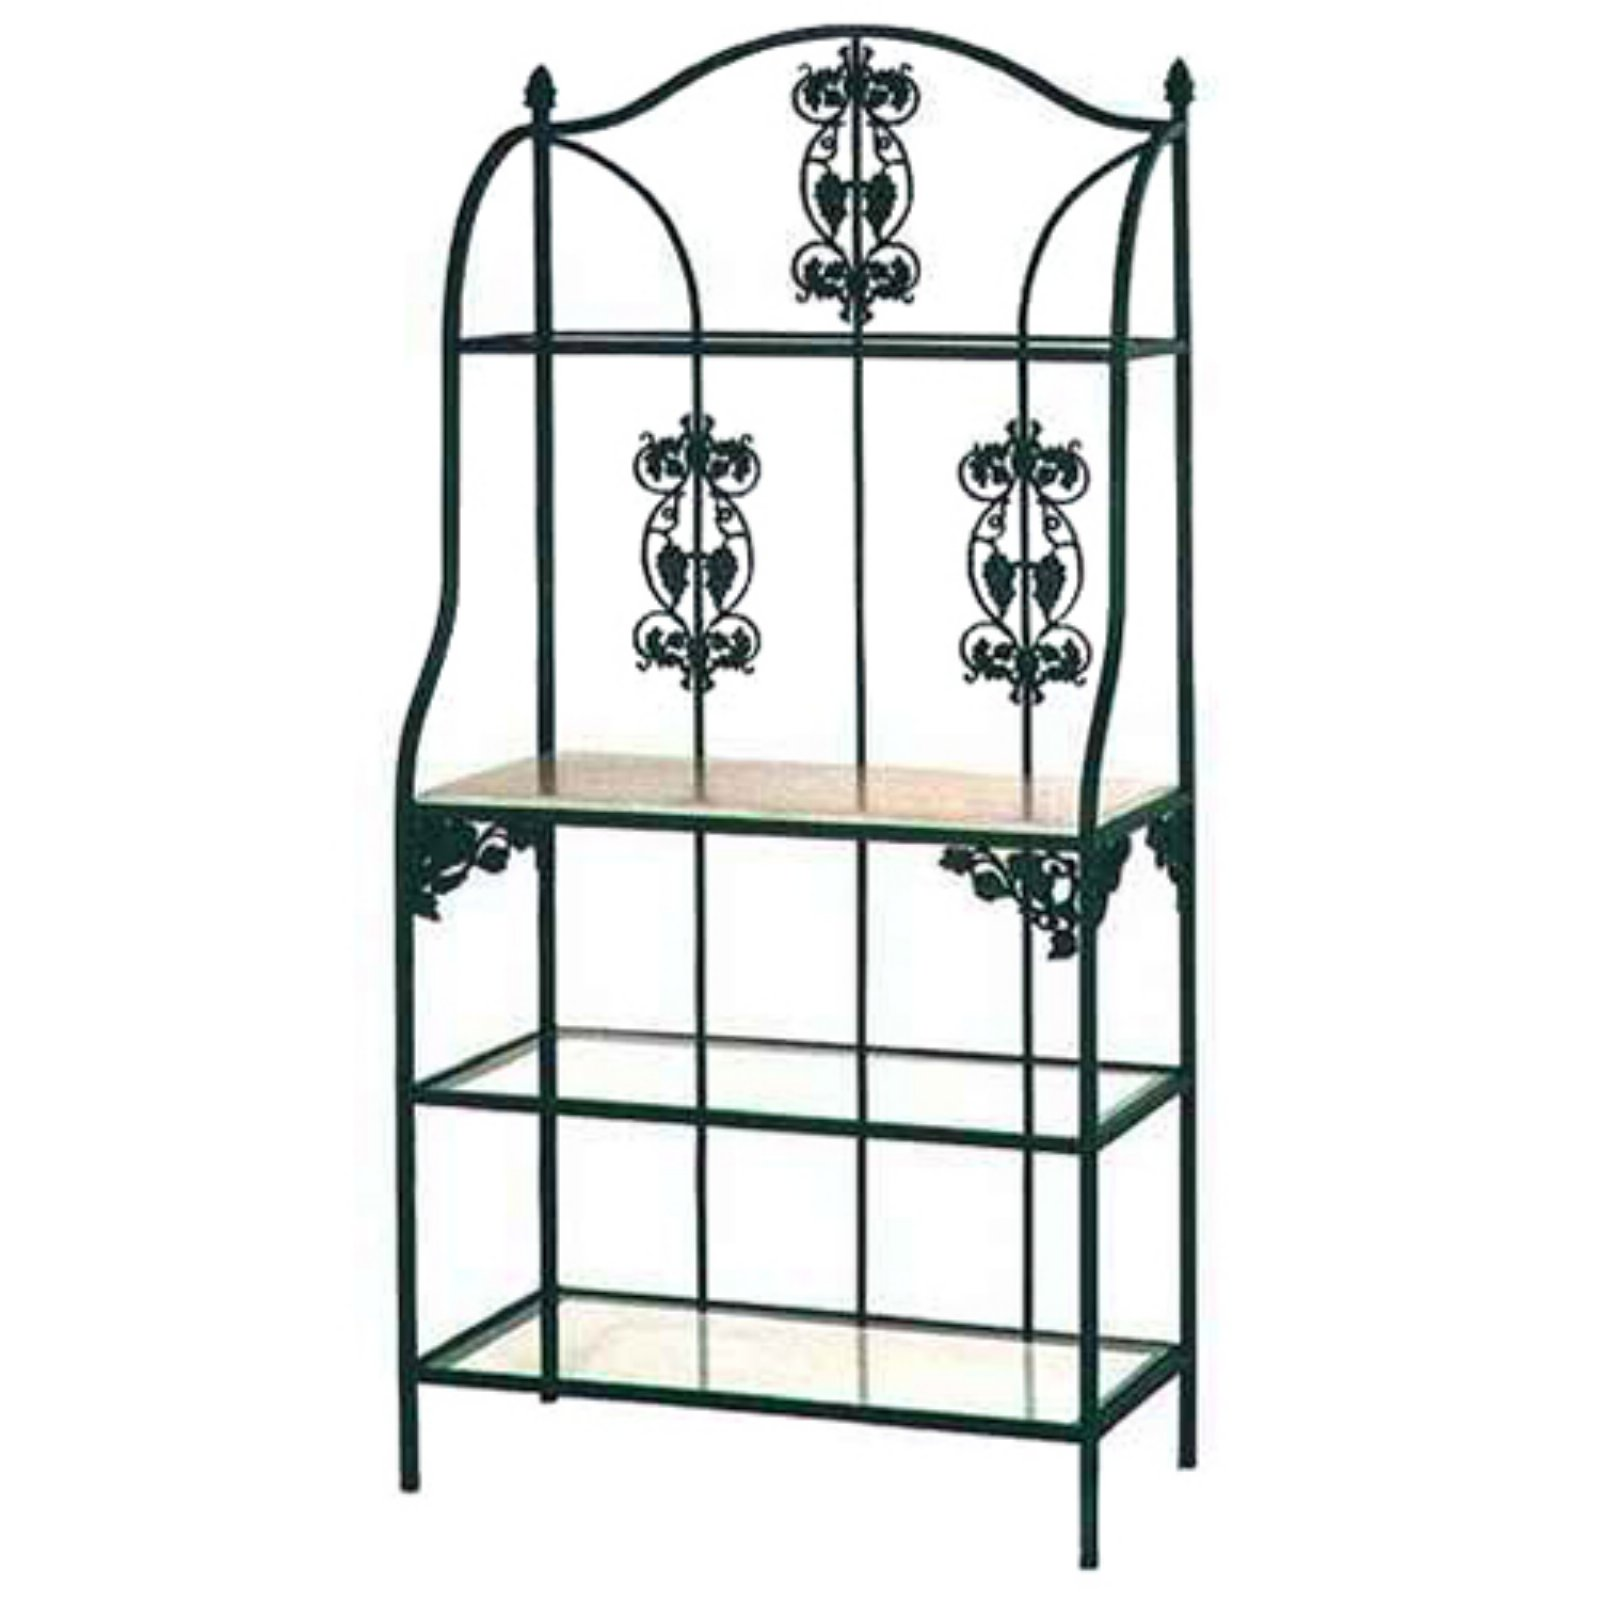 Grace Manufacturing Vineyard Backers Rack with 4 Shelves